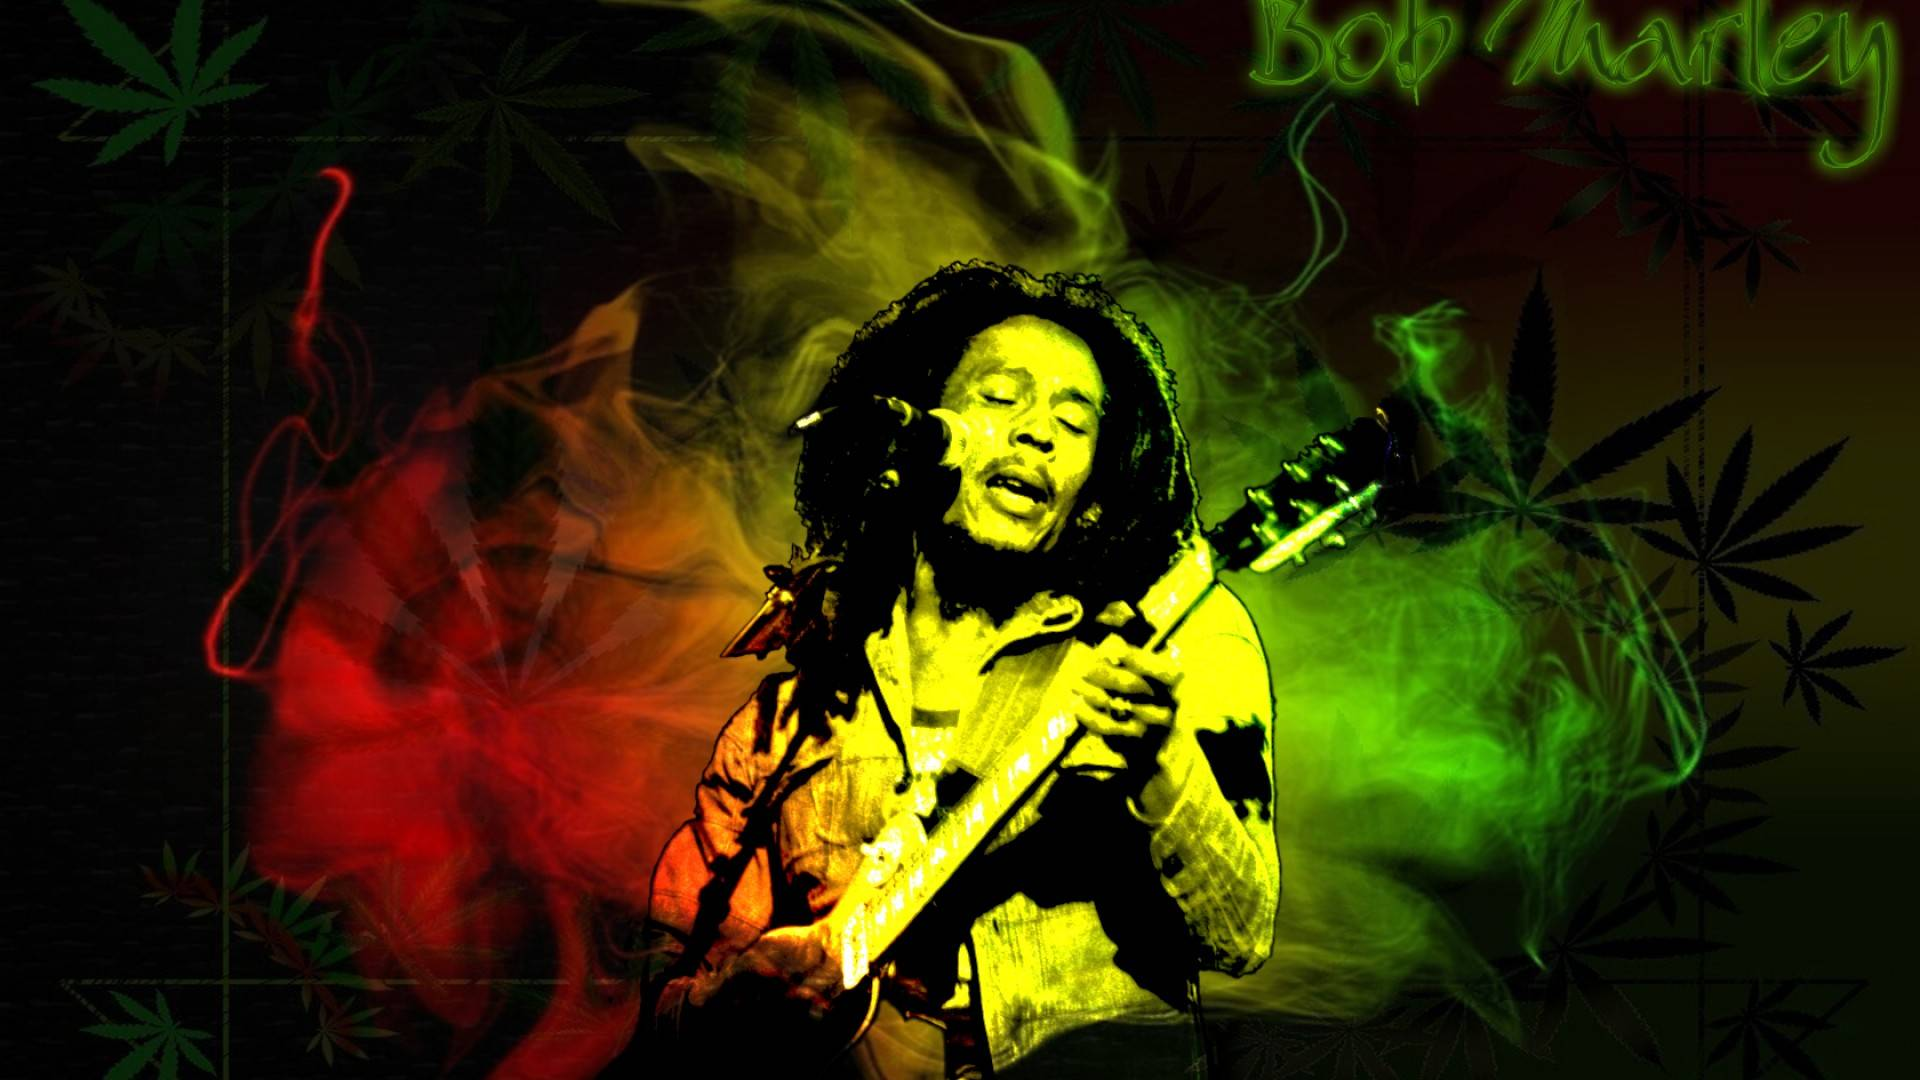 Bob Marley Colors Wallpaper Hd Posted By John Simpson